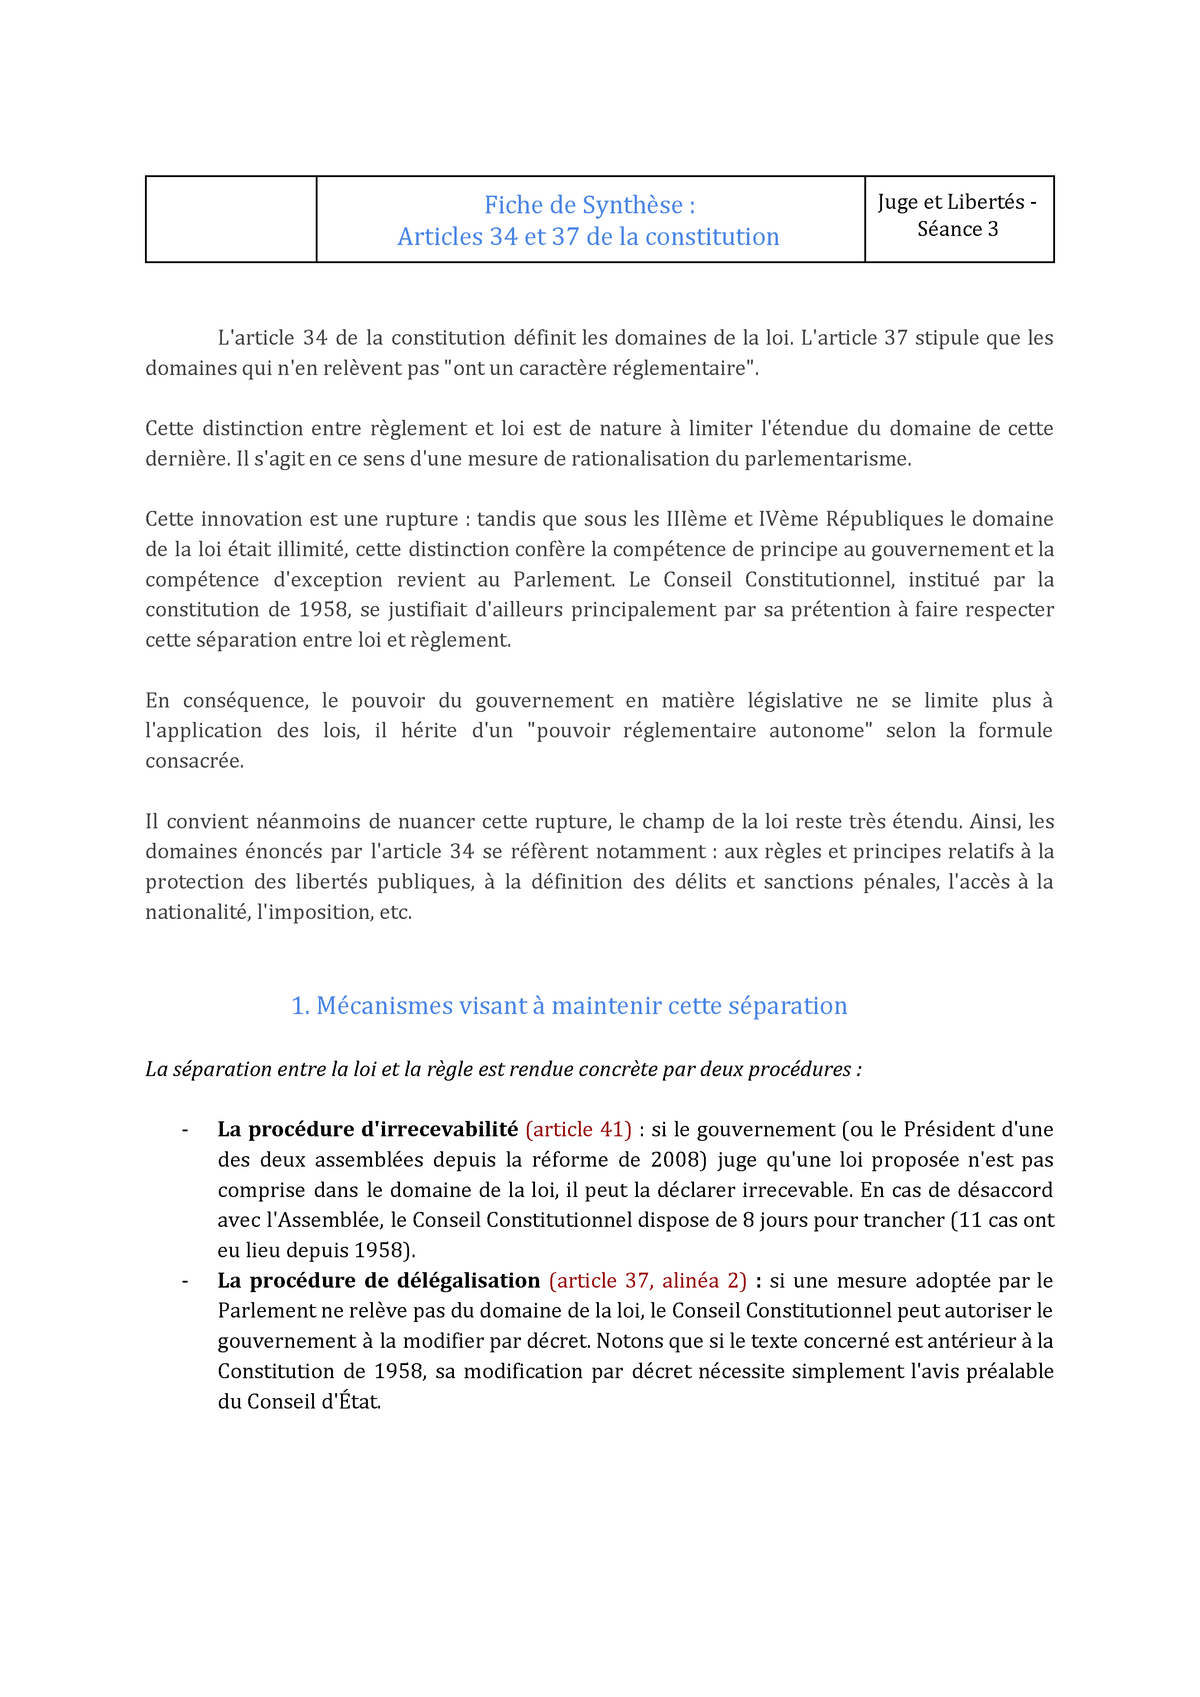 Dissertation Conseil Constitutionnel Gouvernement Juges • Buy Case study